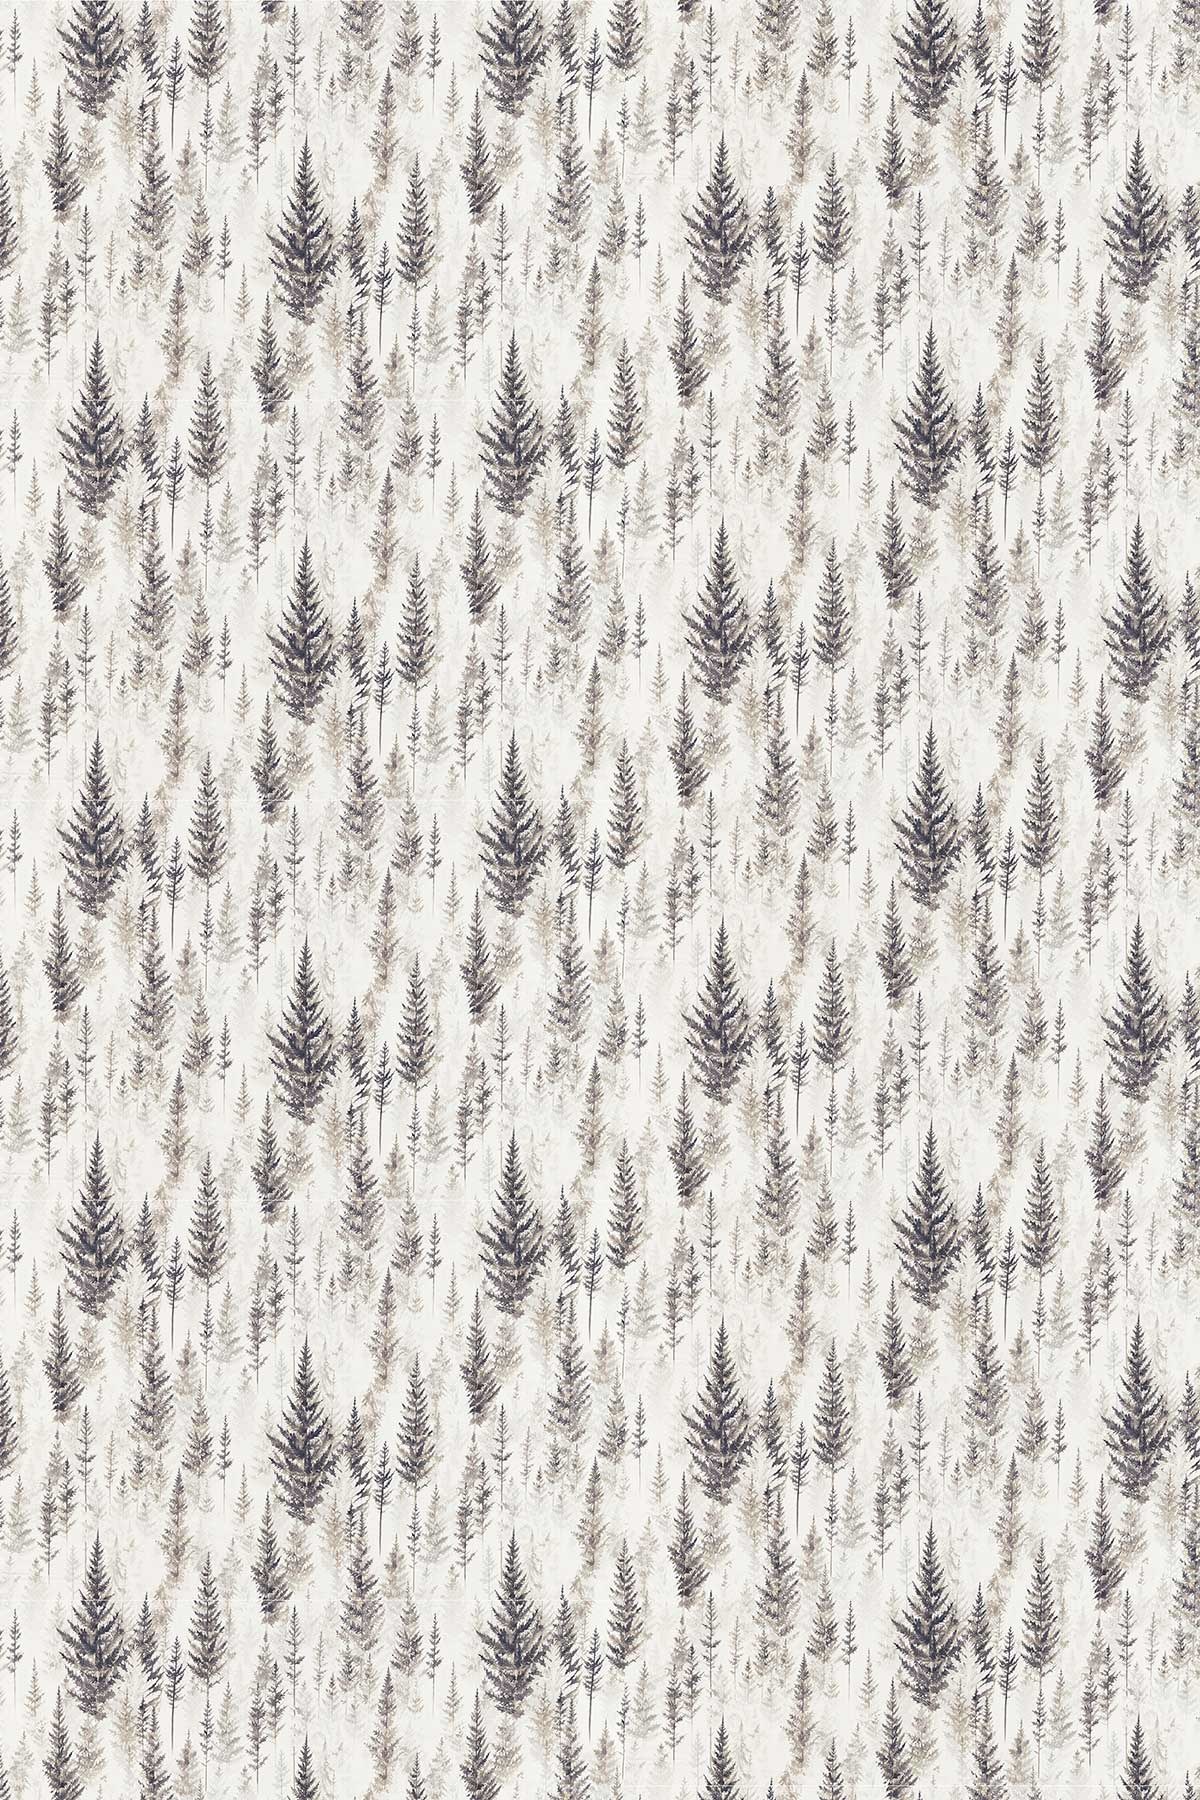 Sanderson Juniper Pine Elder Bark Fabric - Product code: 226535